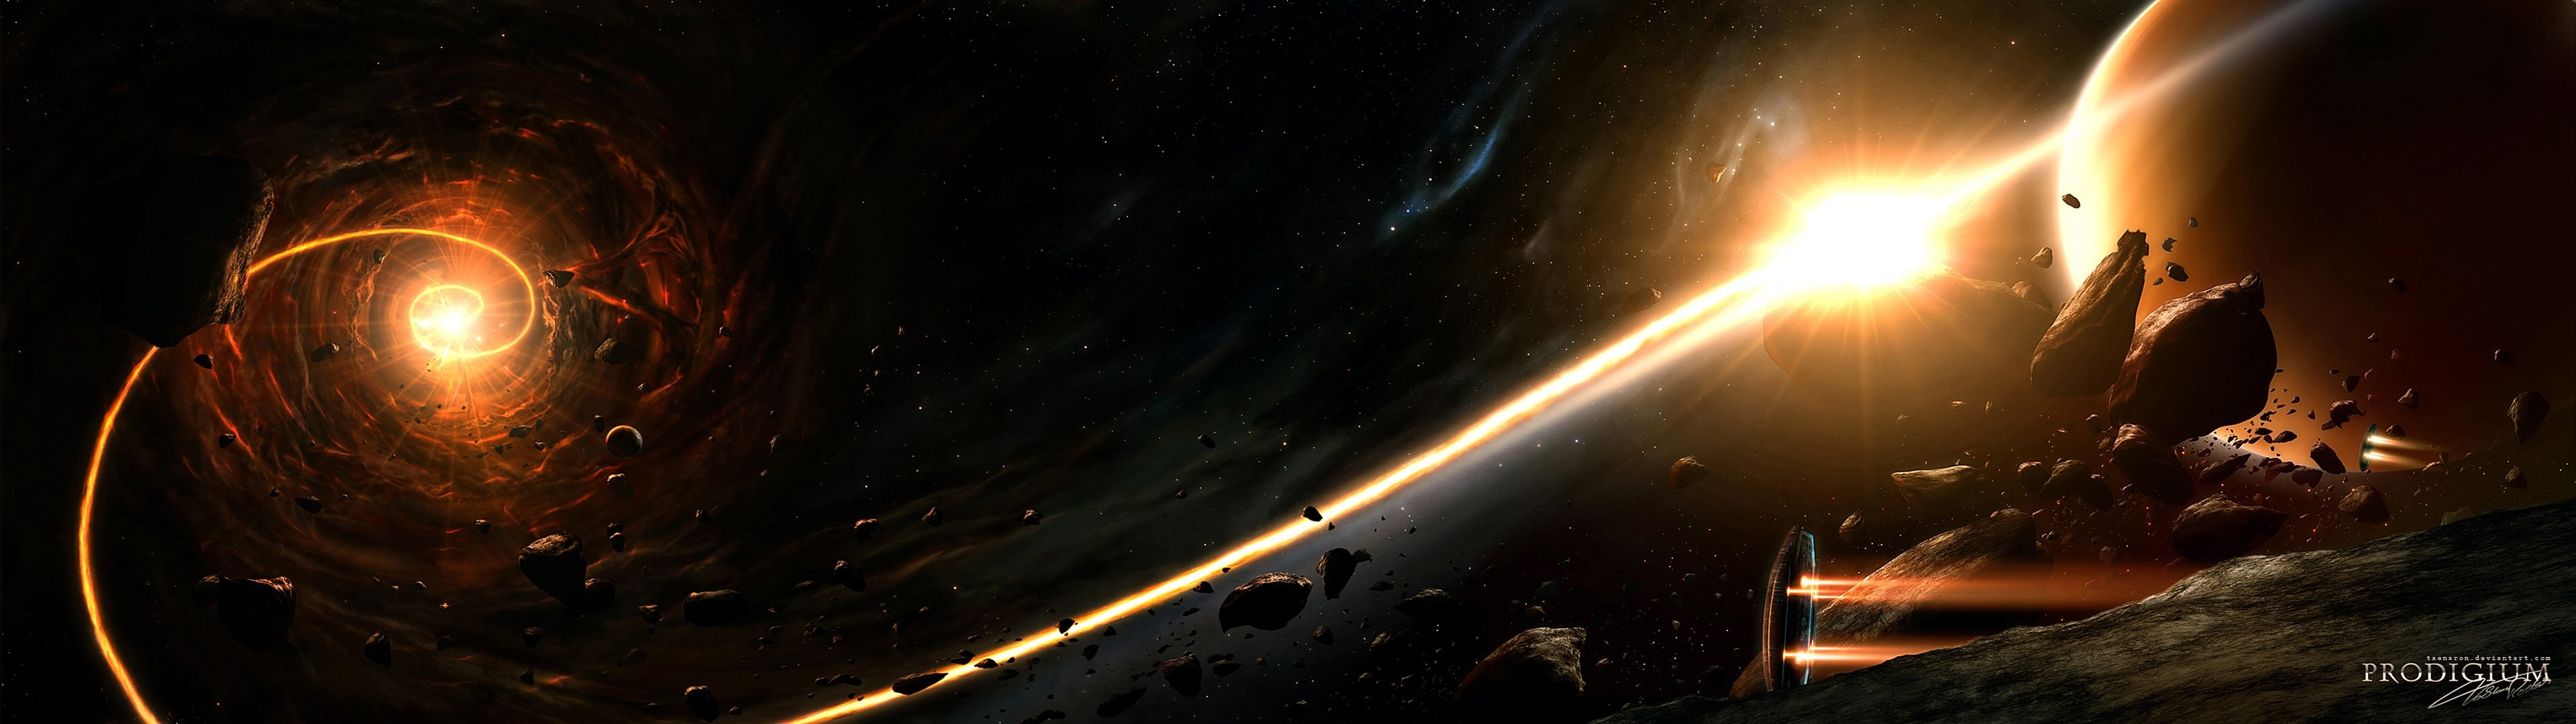 Sunrise outer space planets wallpaper | | 329246 .